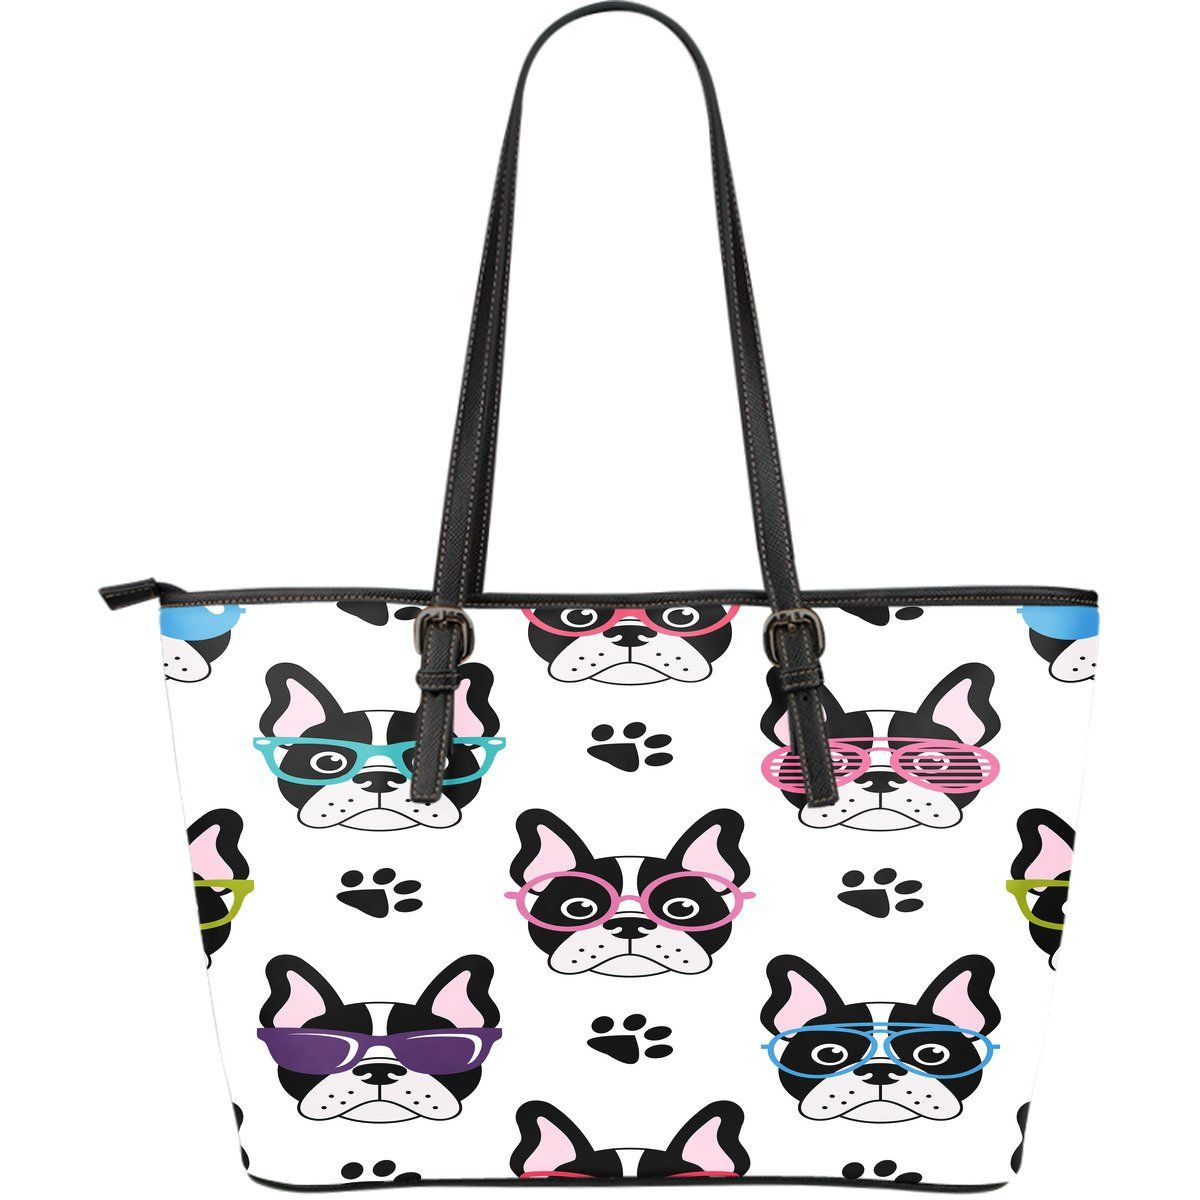 Amazing French Bulldog Leather Tote Bag totebag bag